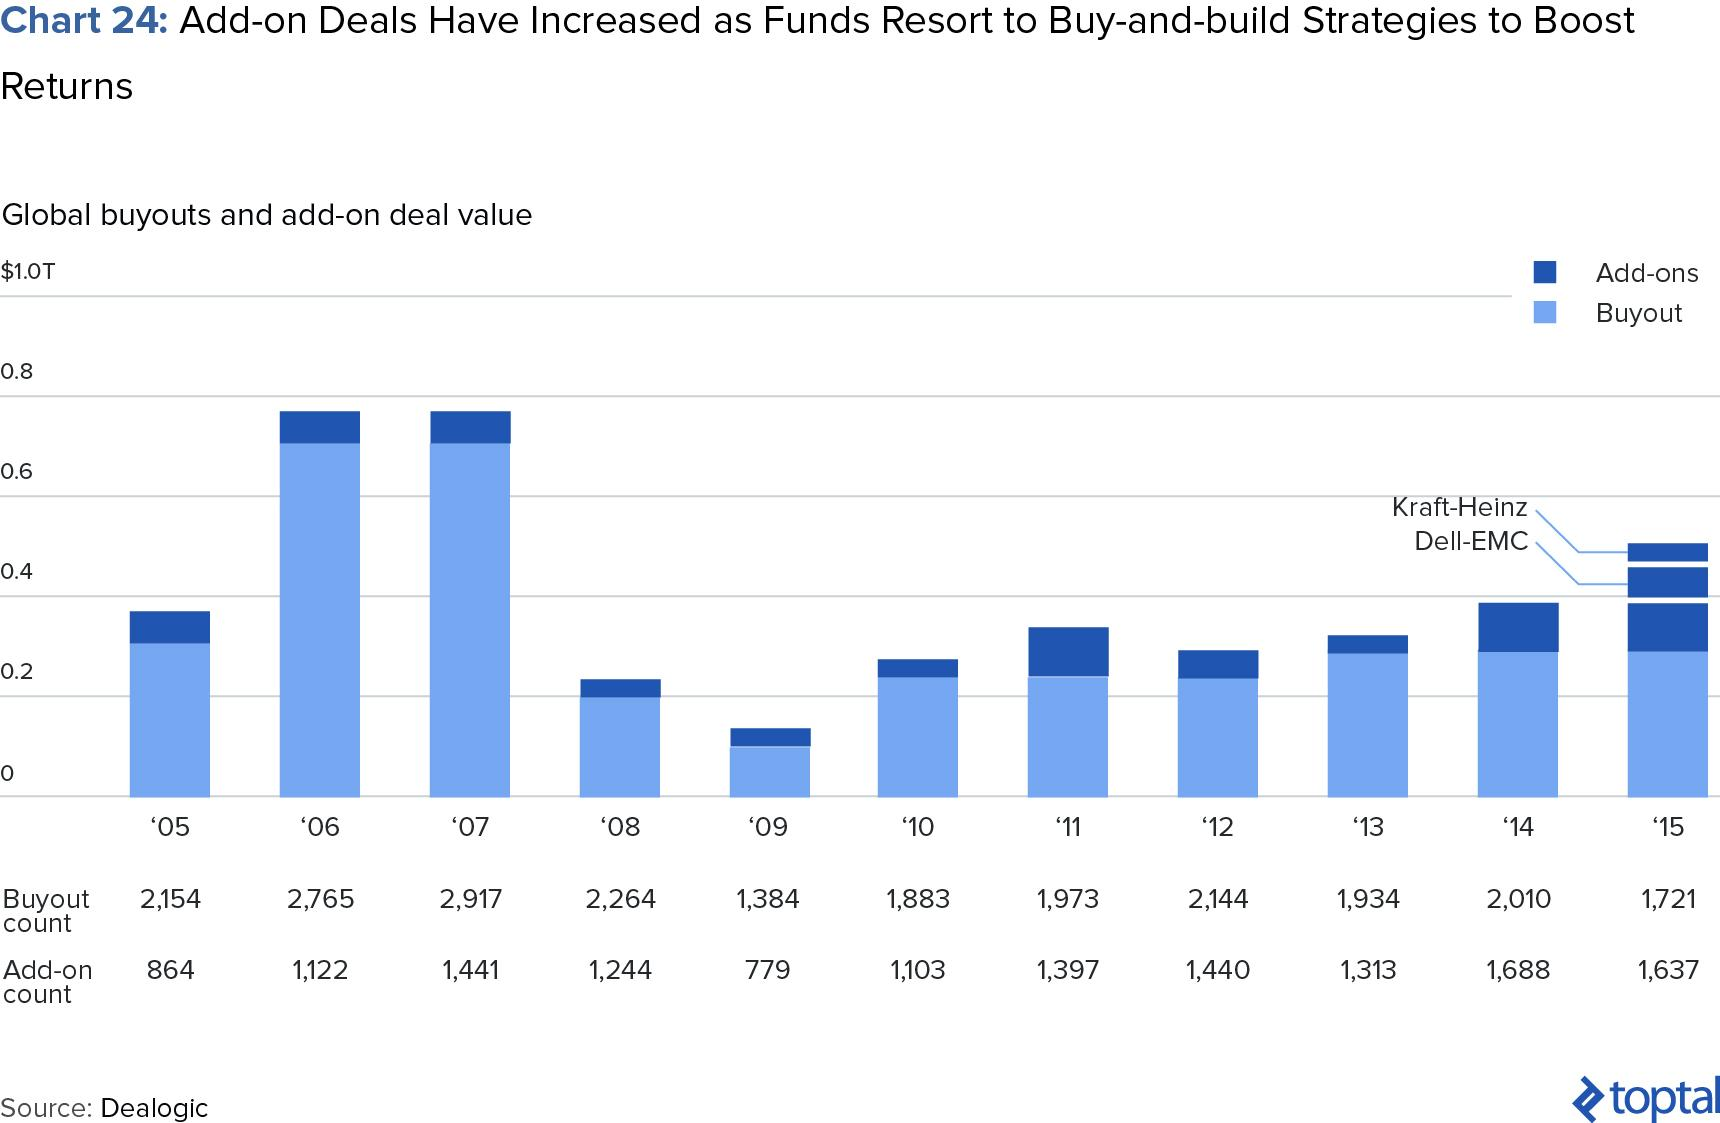 Chart 24: Add-on Deals Have Increased as Funds Resort to Buy-and-Build Strategies to Boost Returns